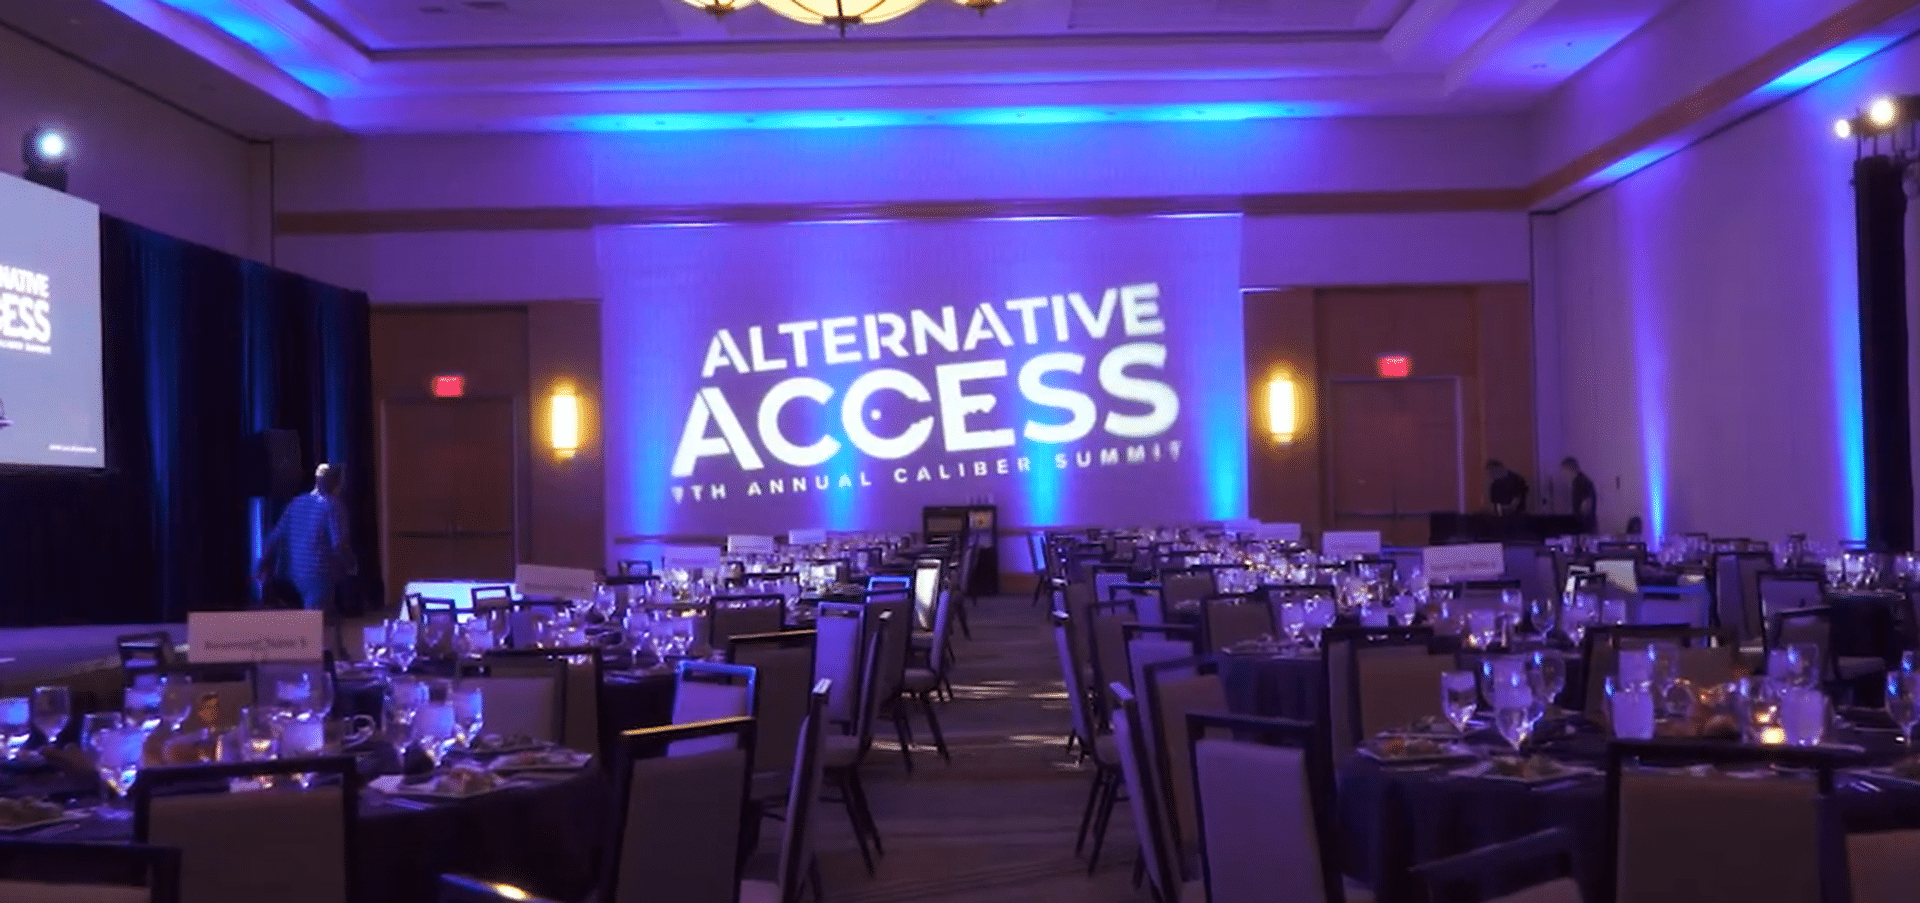 Photo of the ballroom of Caliber's Alternative Access Summit 2017